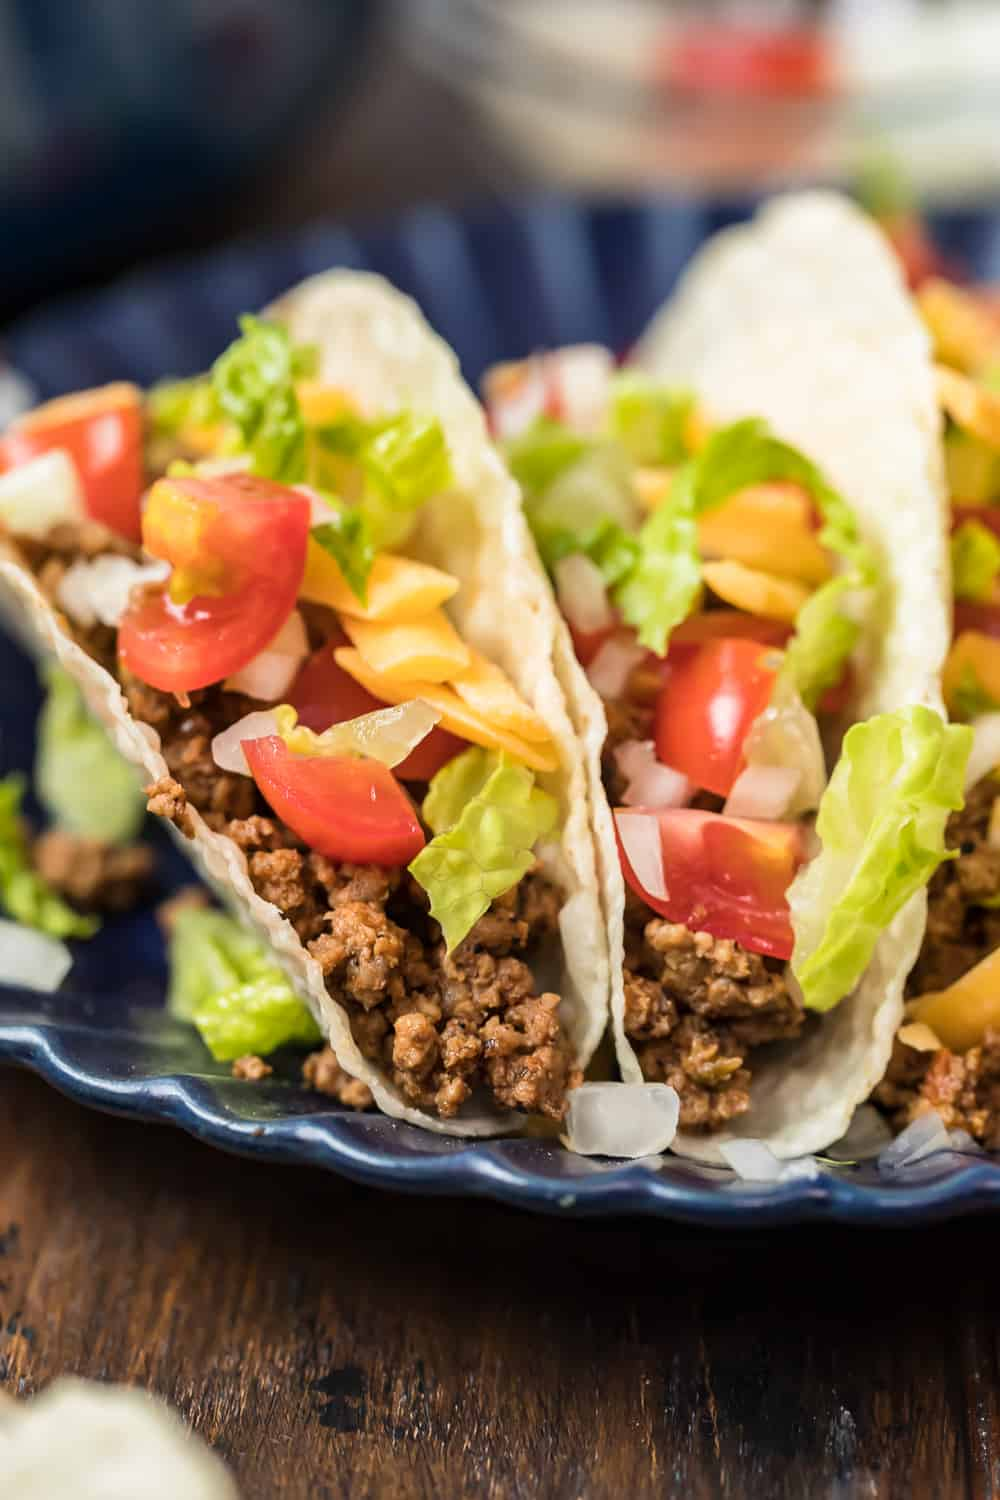 two beef tacos loaded with veggies